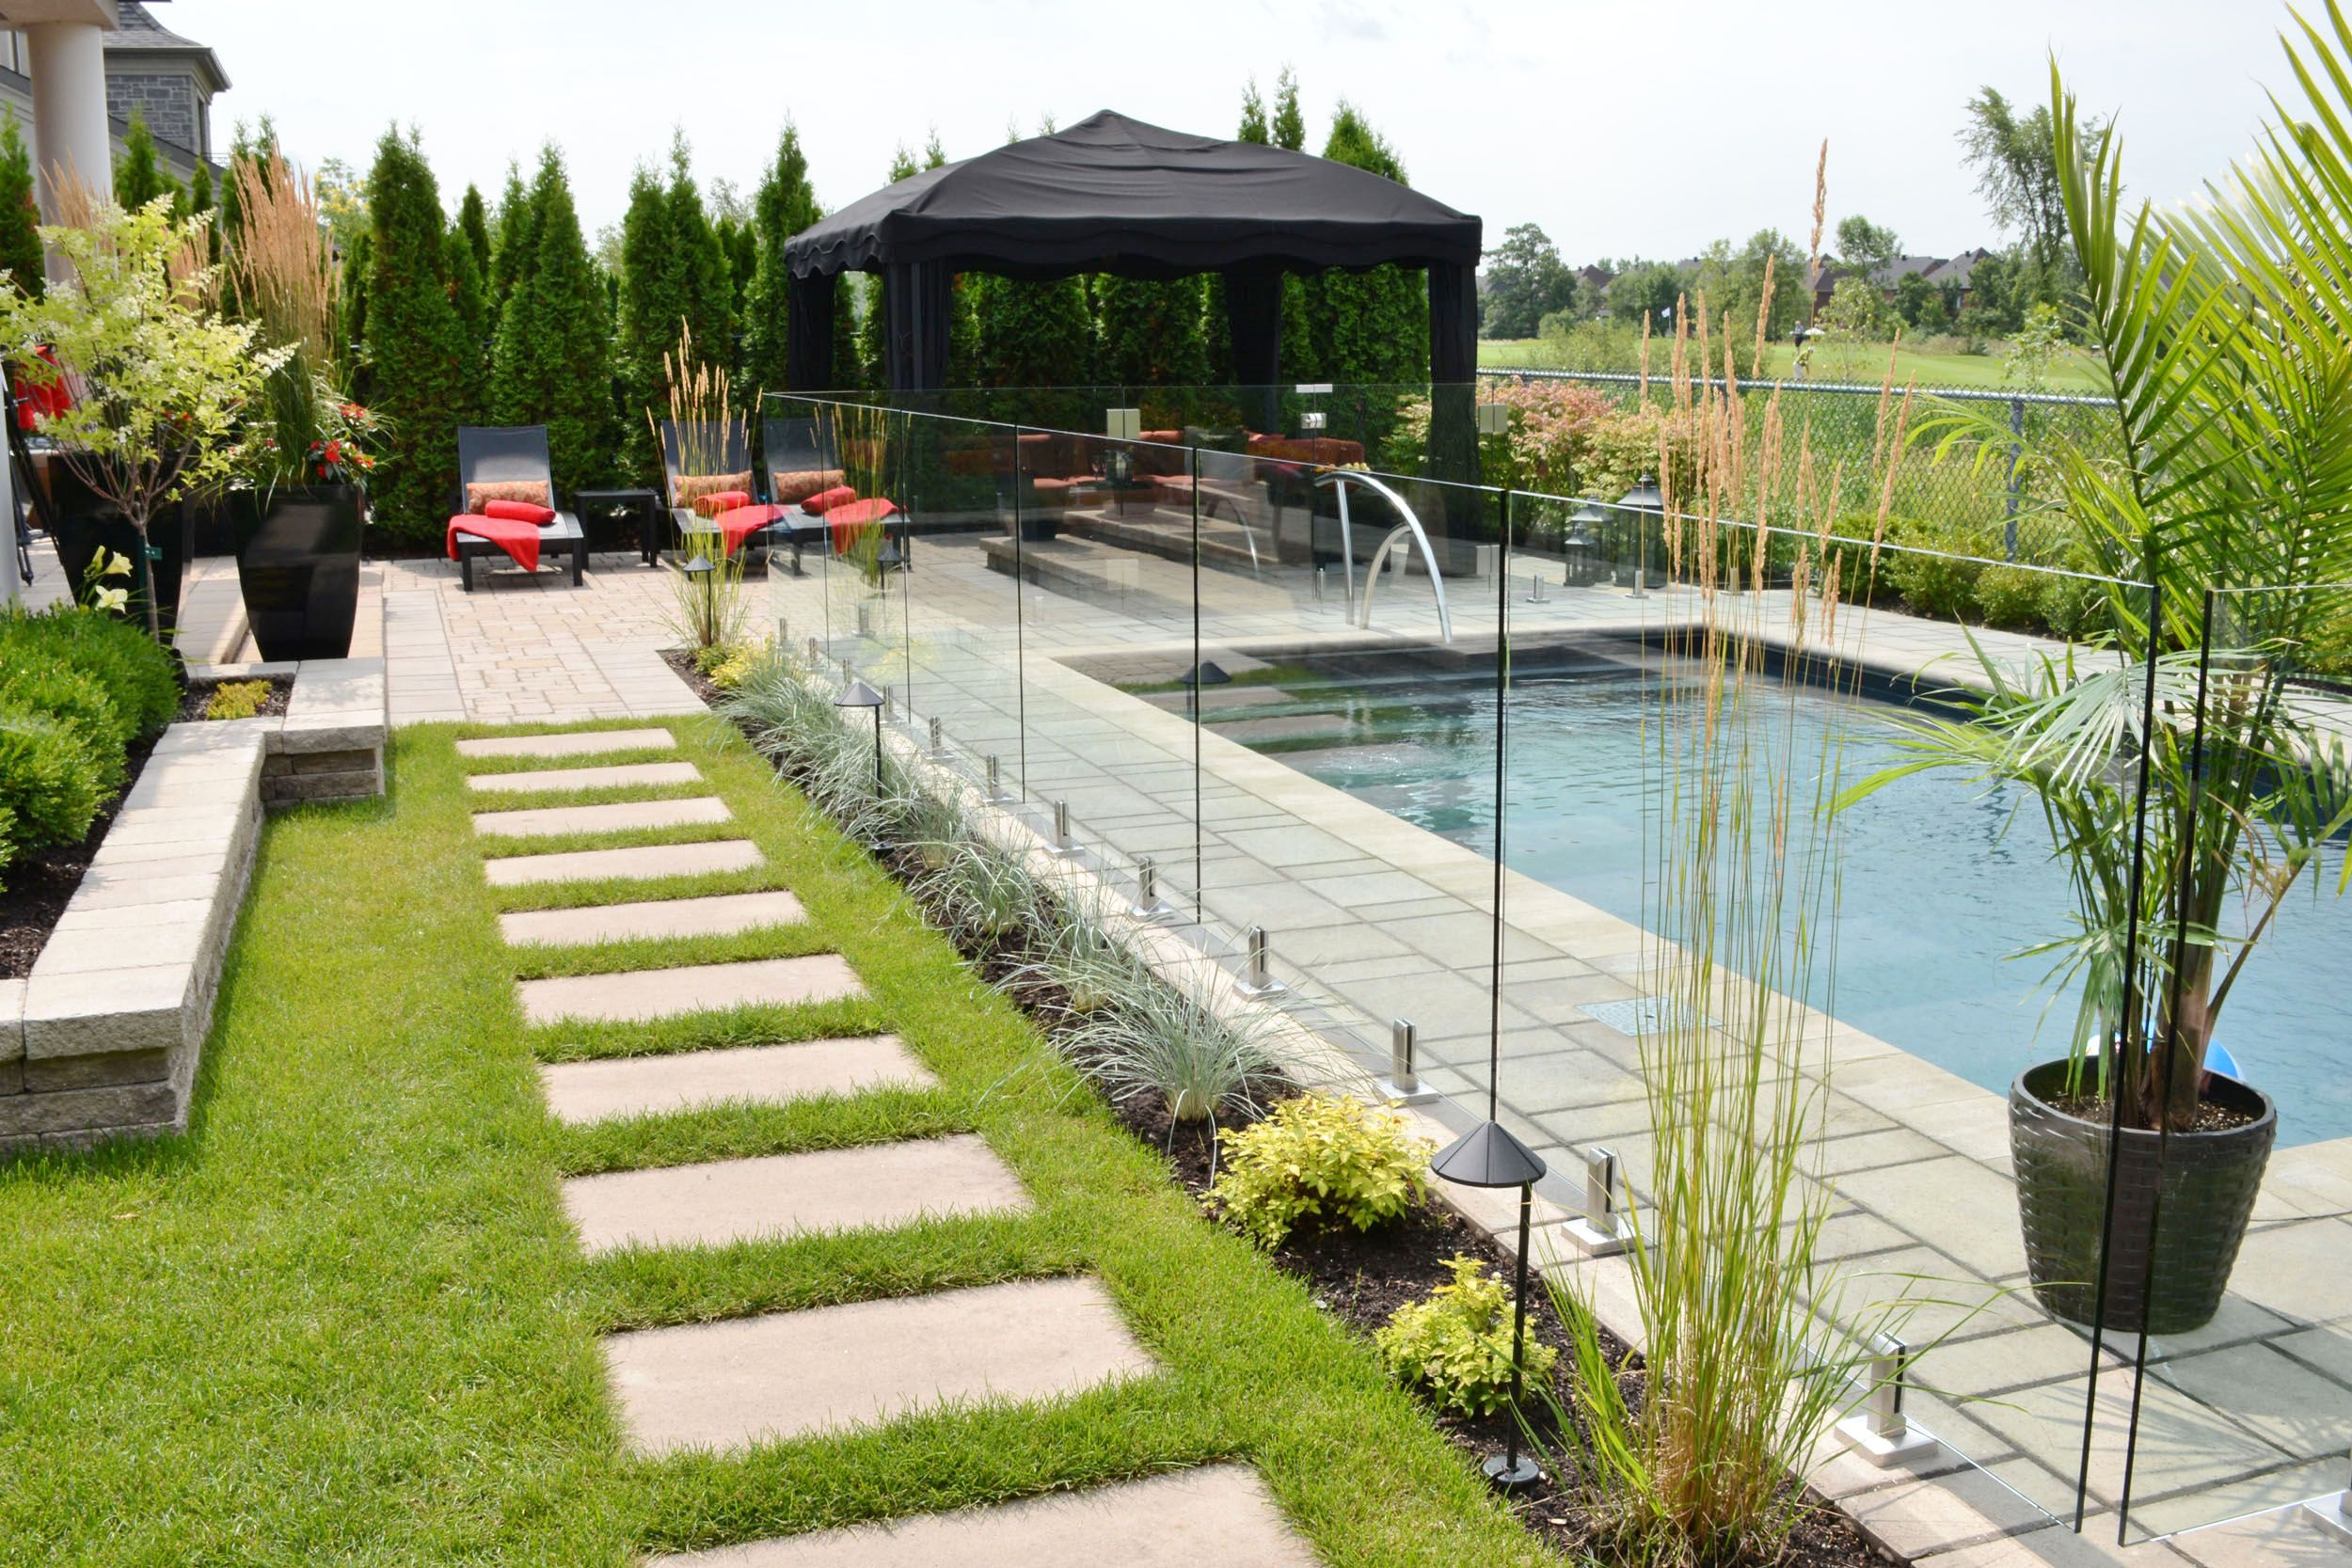 Dans Cette Cour Arriere L Installation D Une Piscine Creusee A Completement Change Le Decor Le But Backyard Pool Landscaping Backyard Pool Pool Landscaping